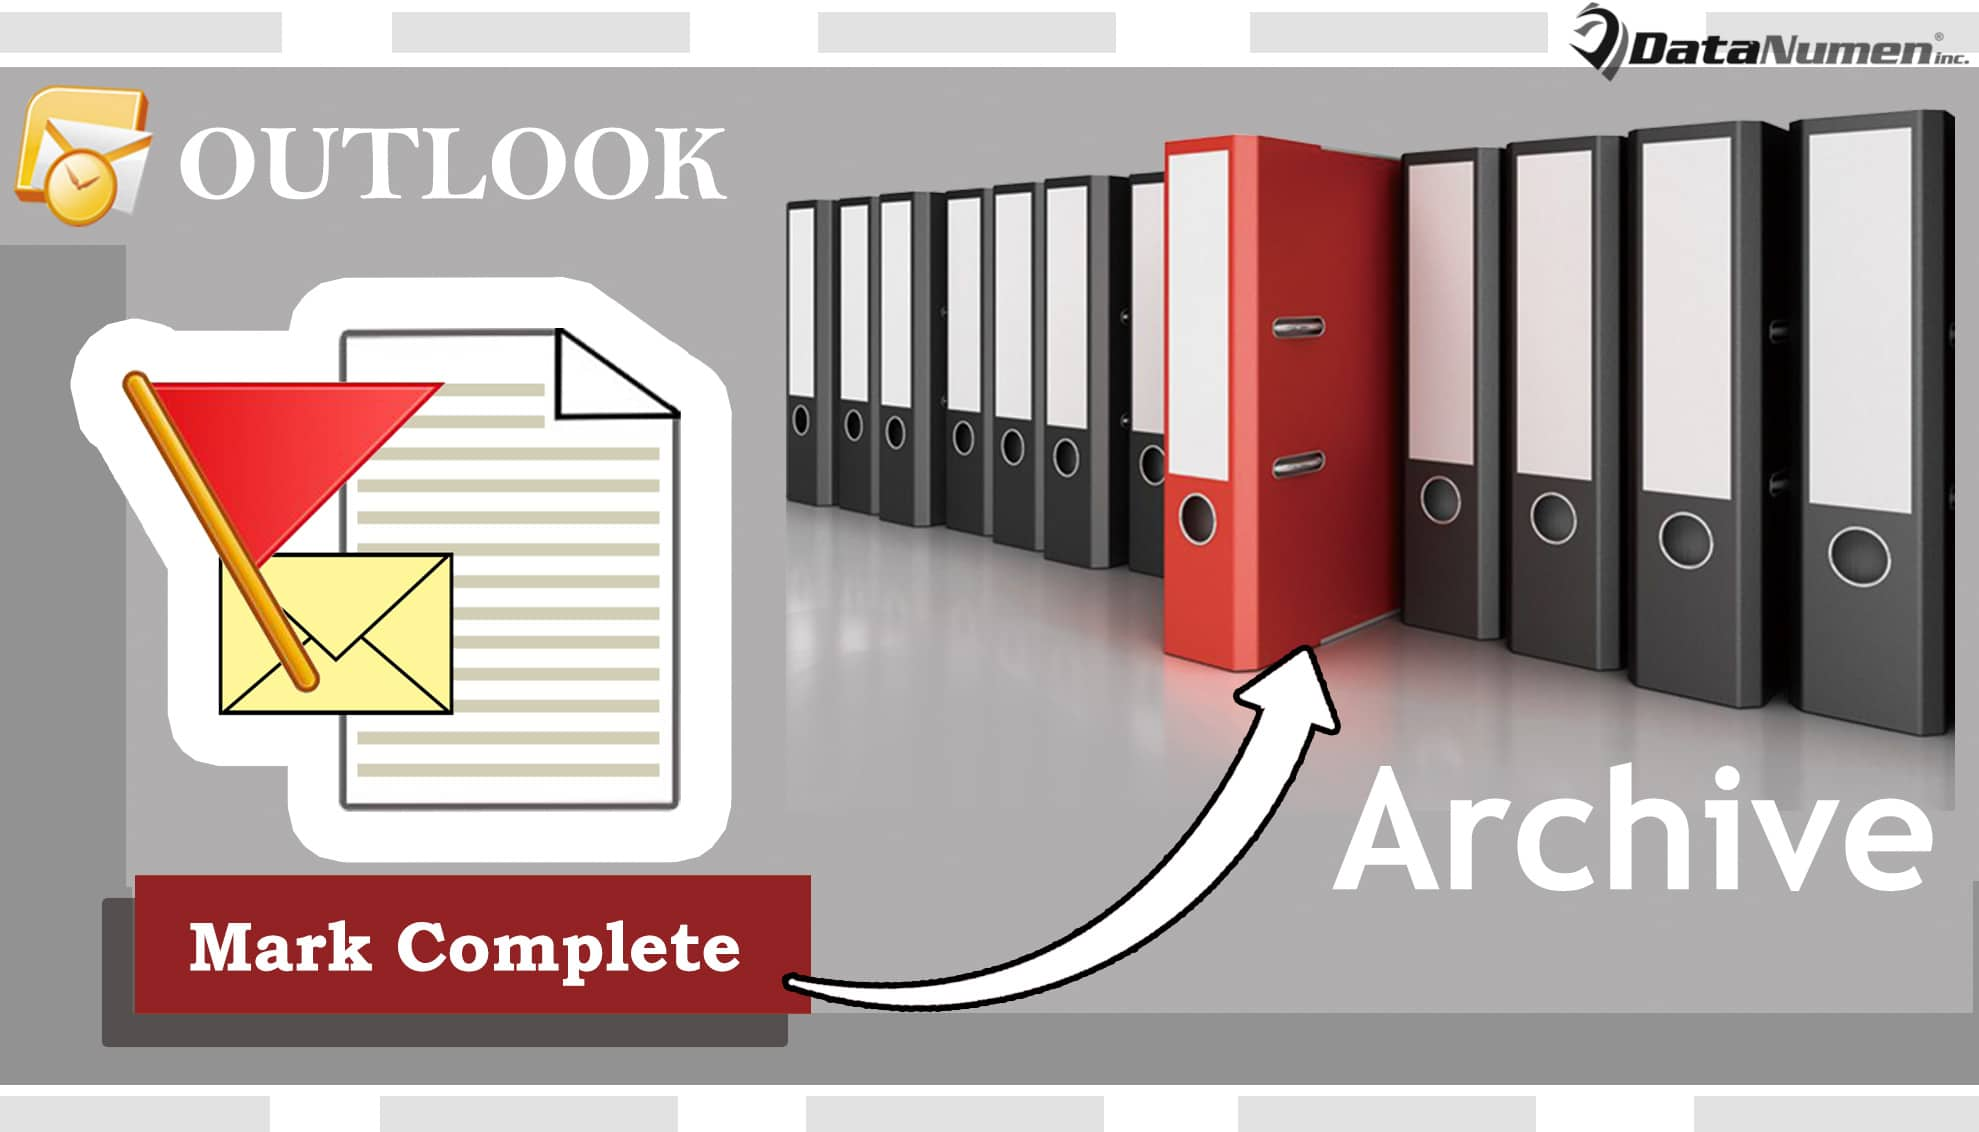 Auto Archive a Flagged Email after Marking It Complete in Your Outlook